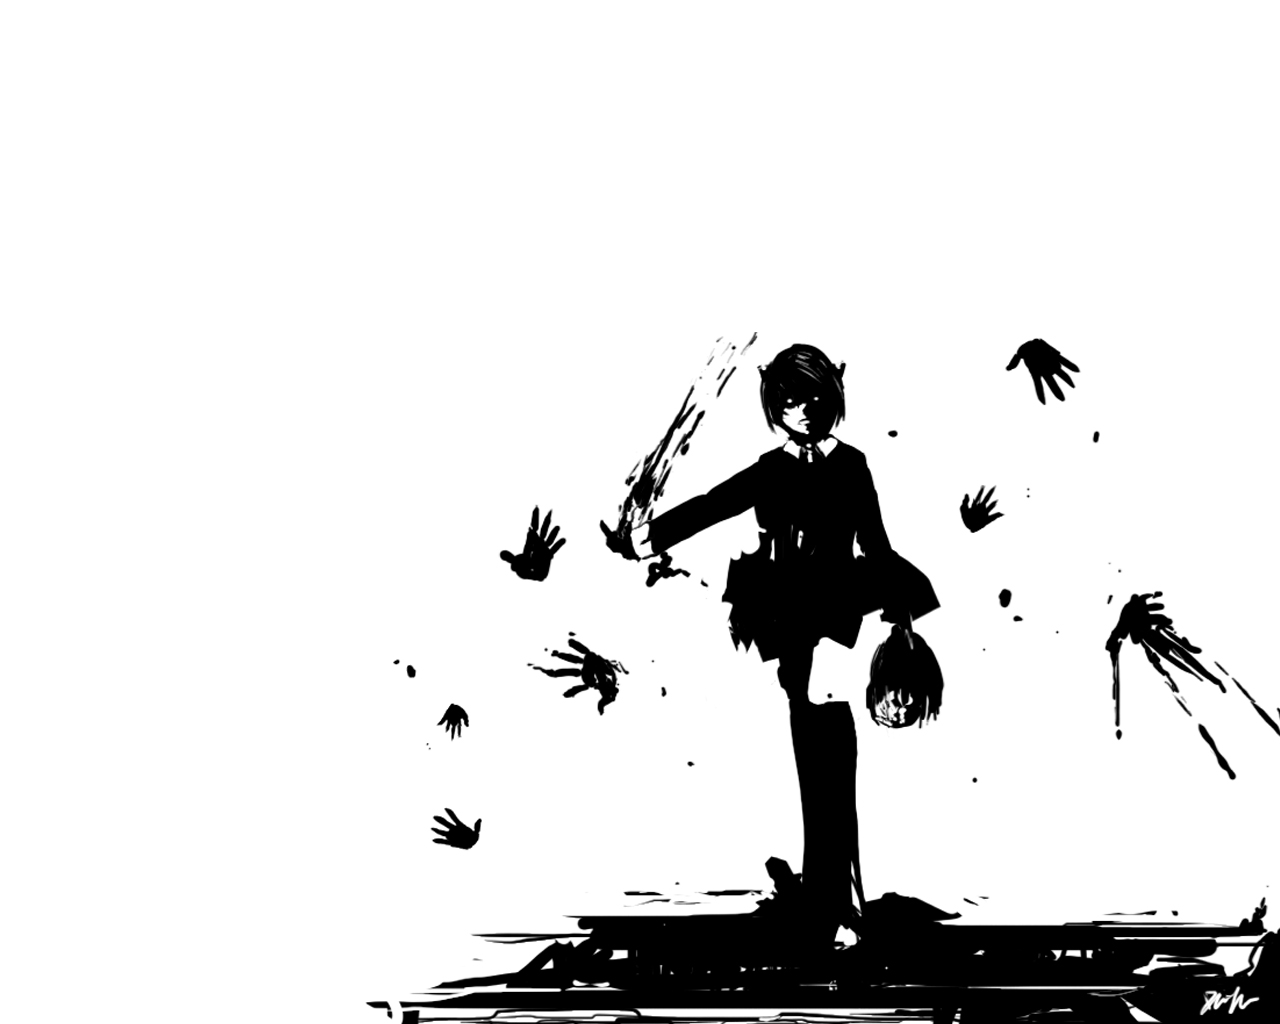 Lucy Silhouette With Severed Head